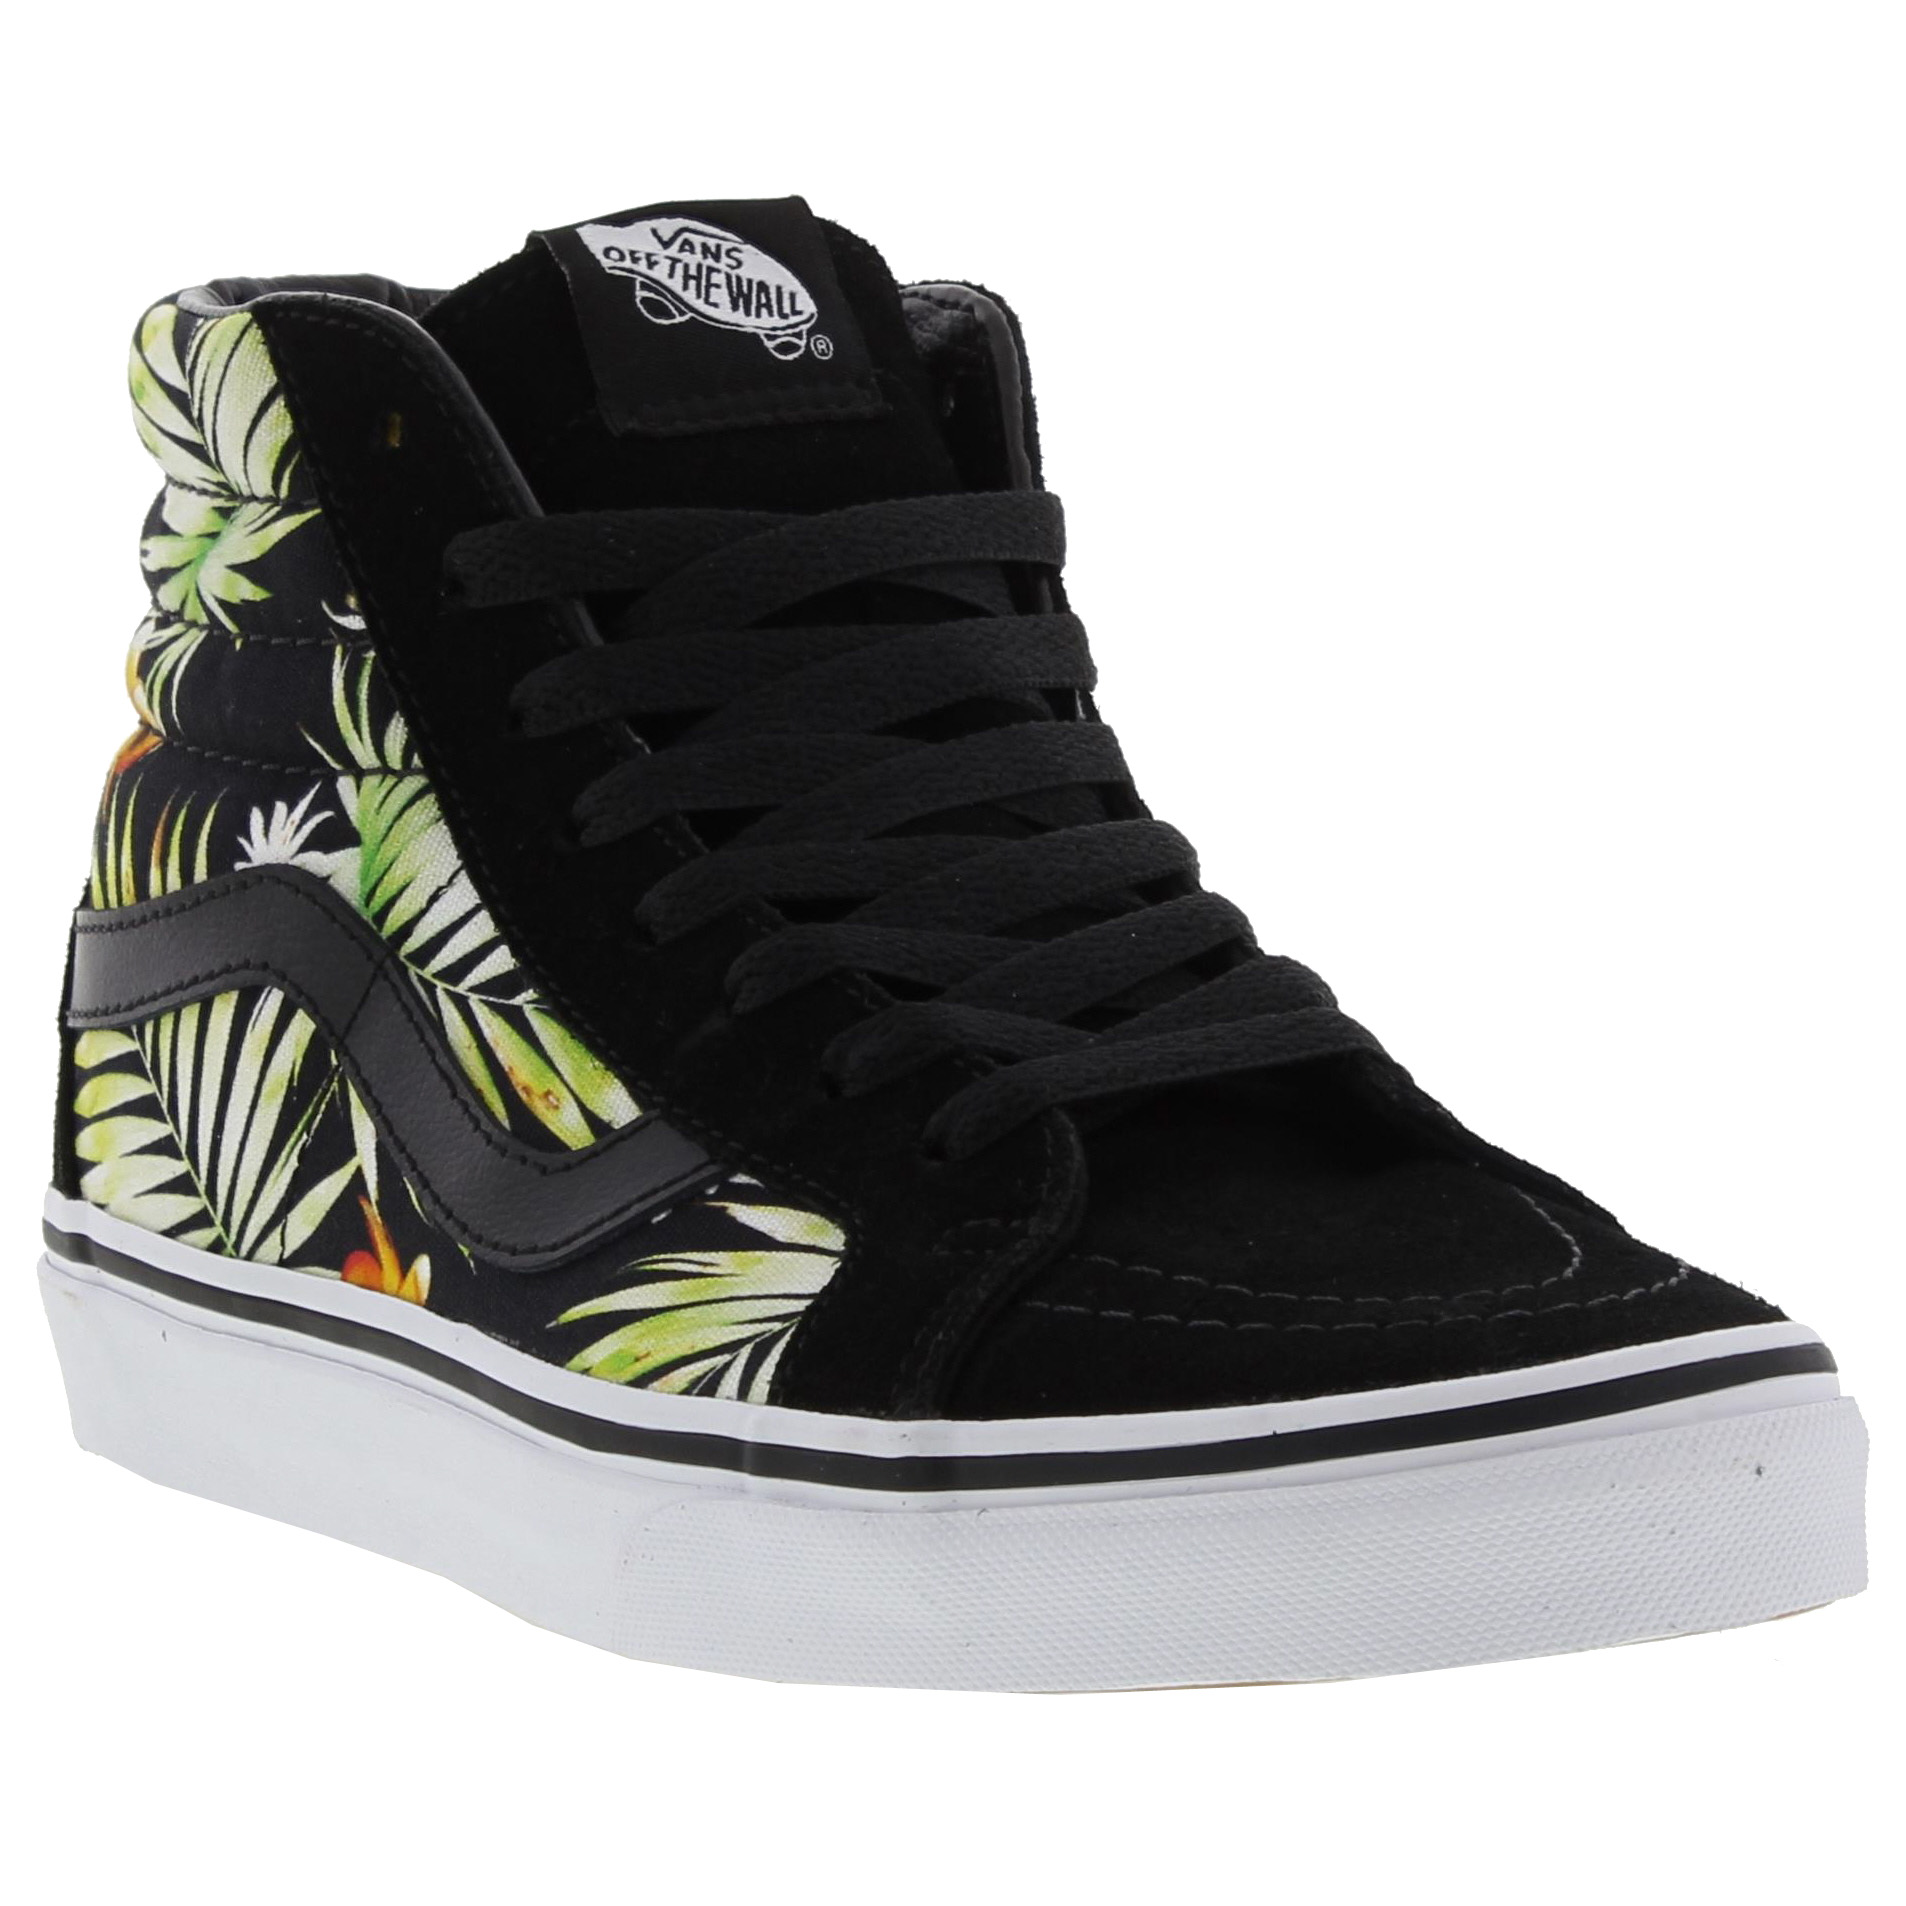 Detalles de Vans UA Sk8 Hi Top Reissue Womens Black High Top Trainers Size  5-7 158b6176c